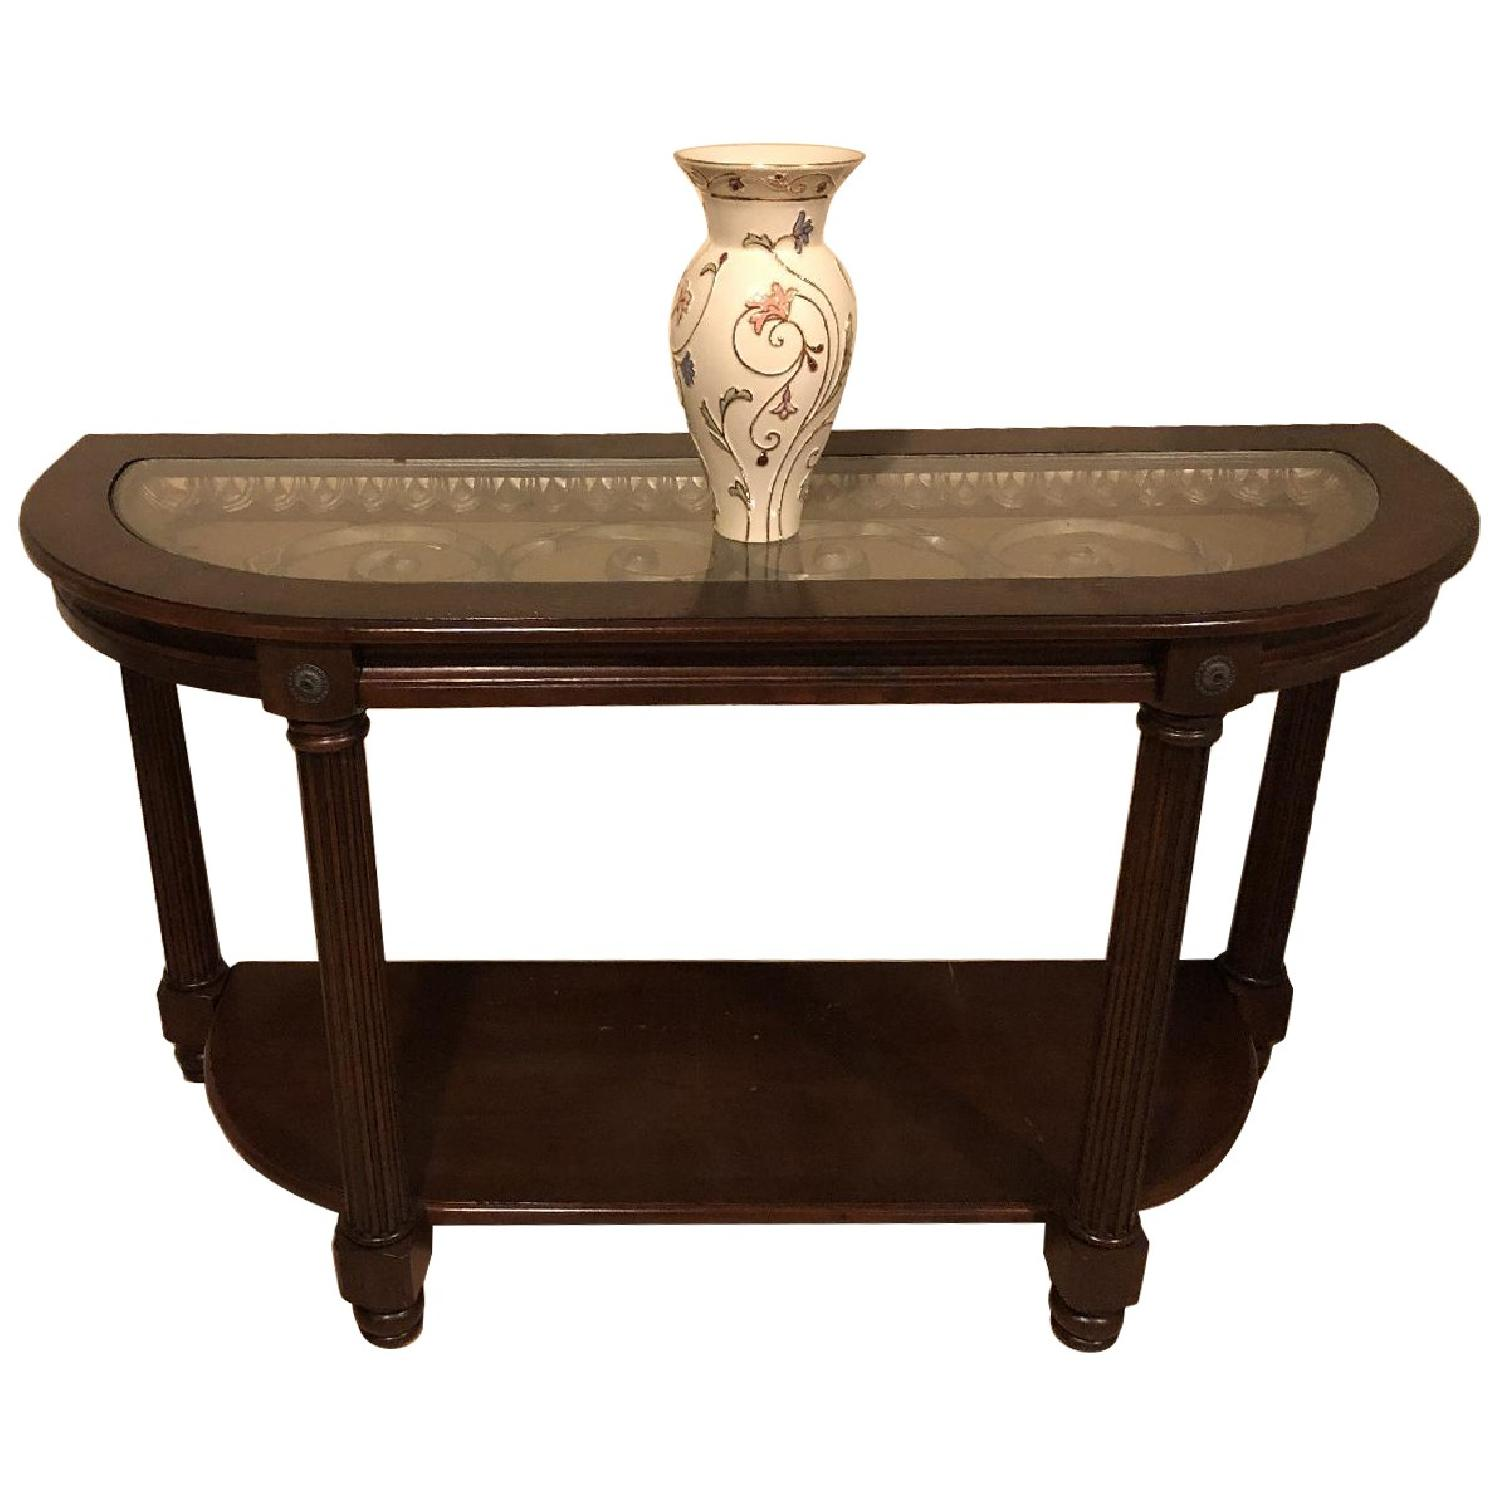 Raymour & Flanigan Sofa/Accent Table